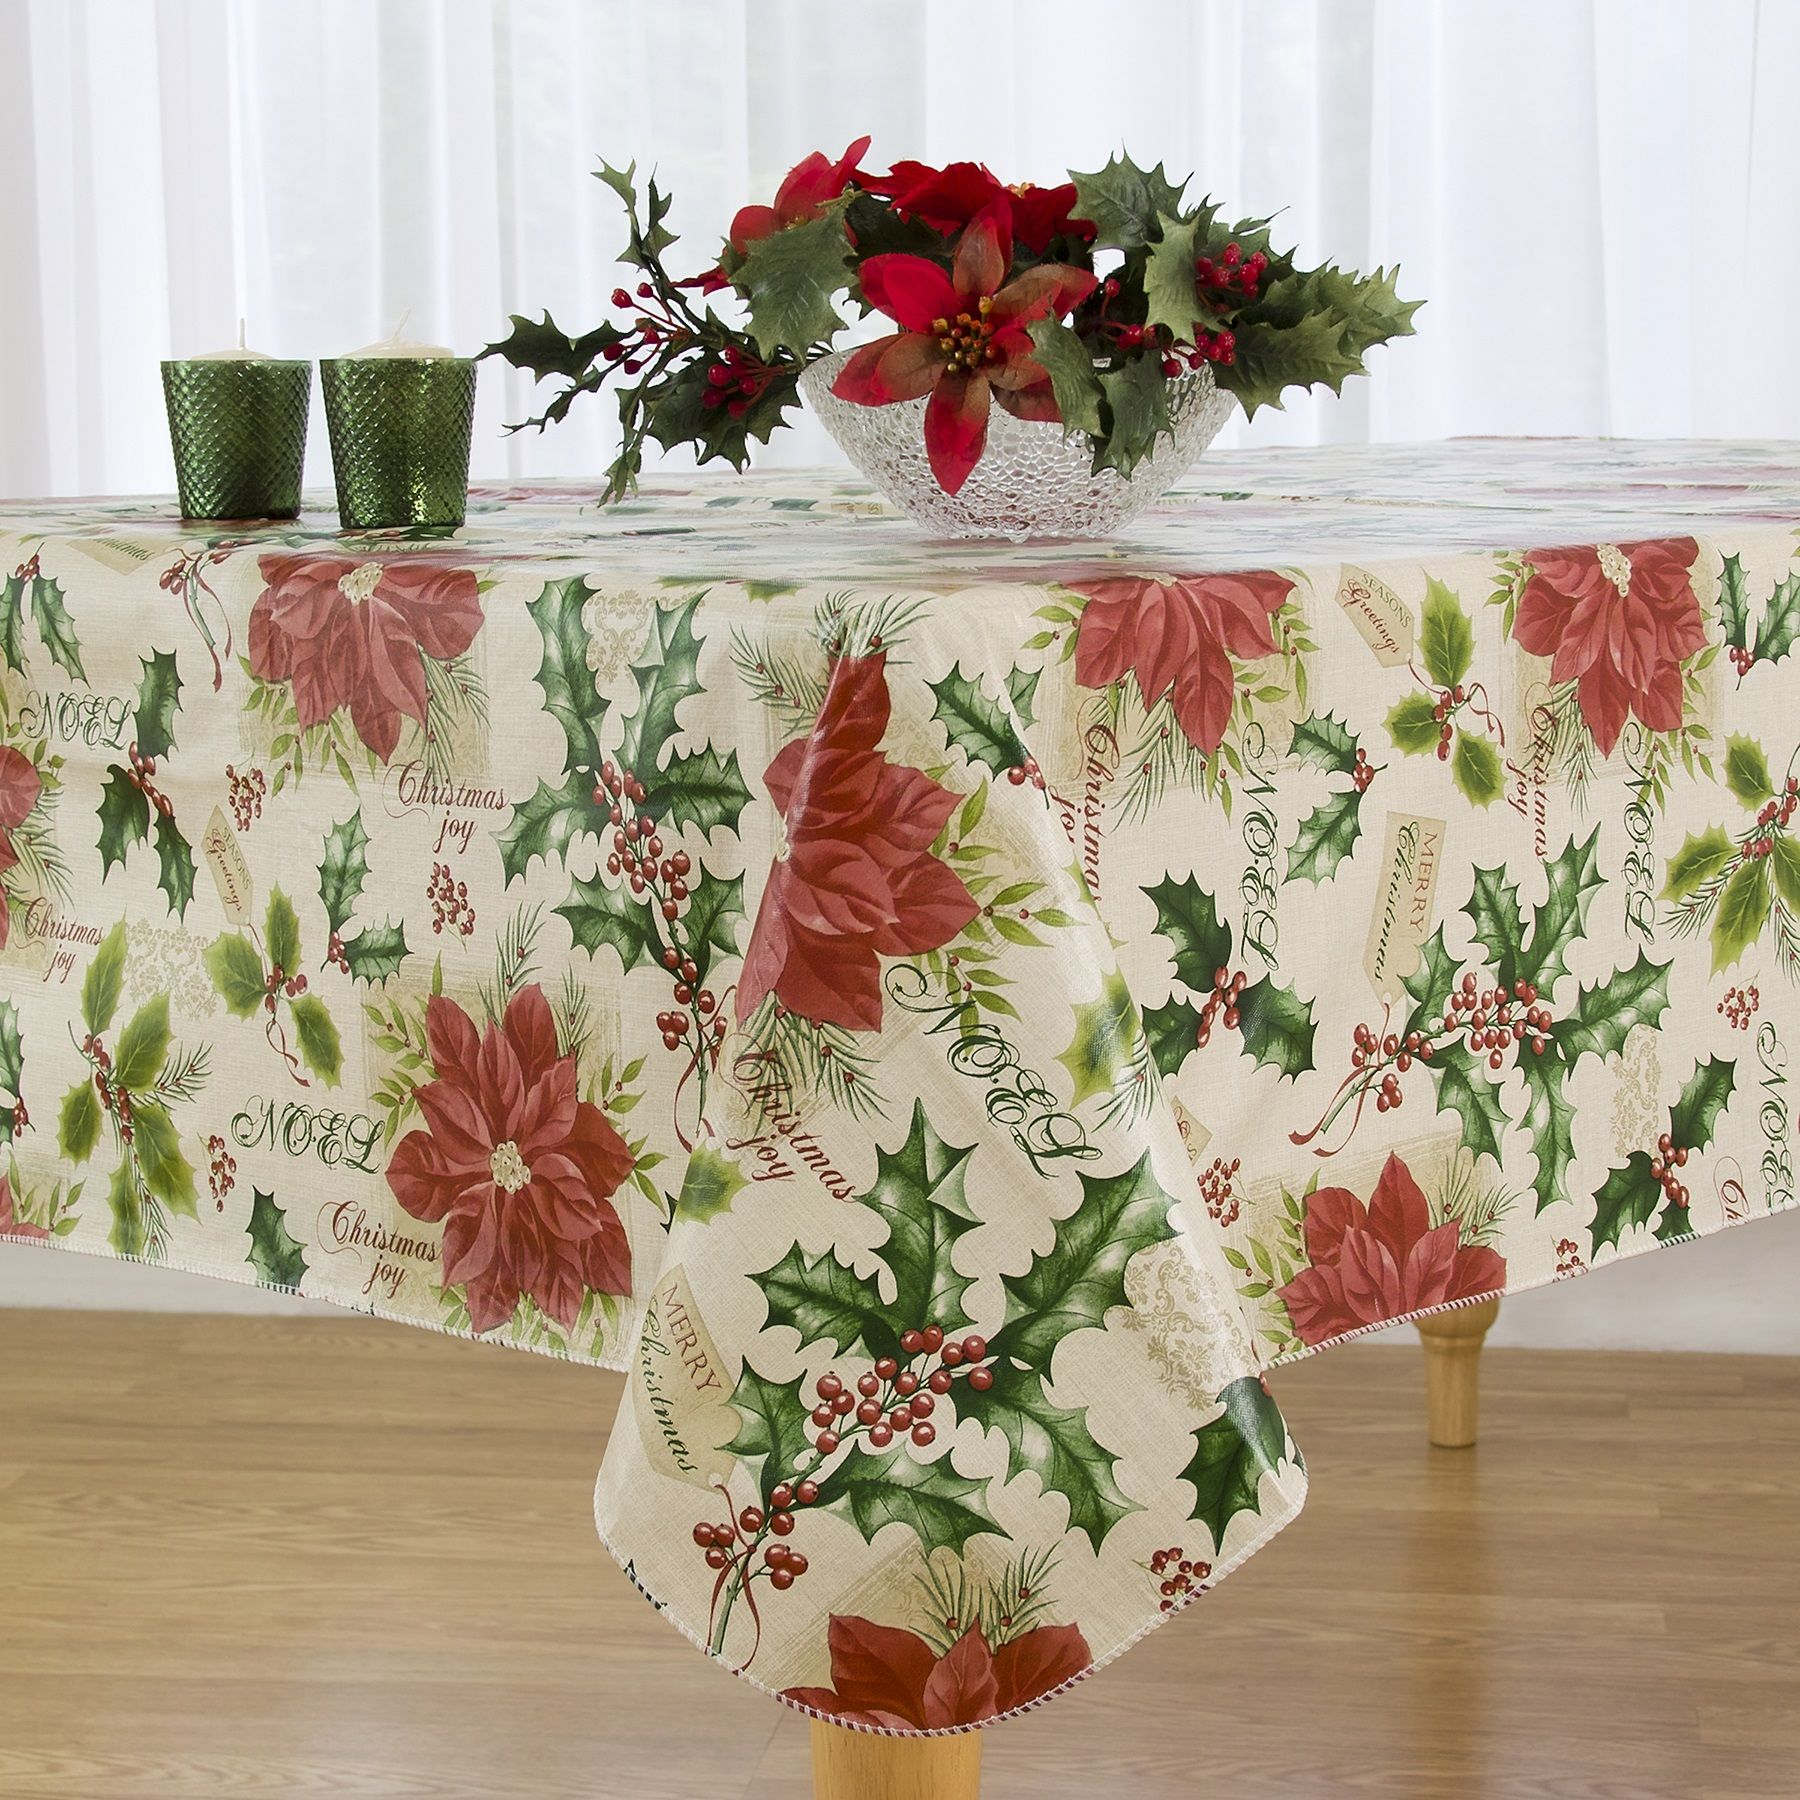 Have You Been Looking For That Perfect Holiday Vinyl Tablecloth